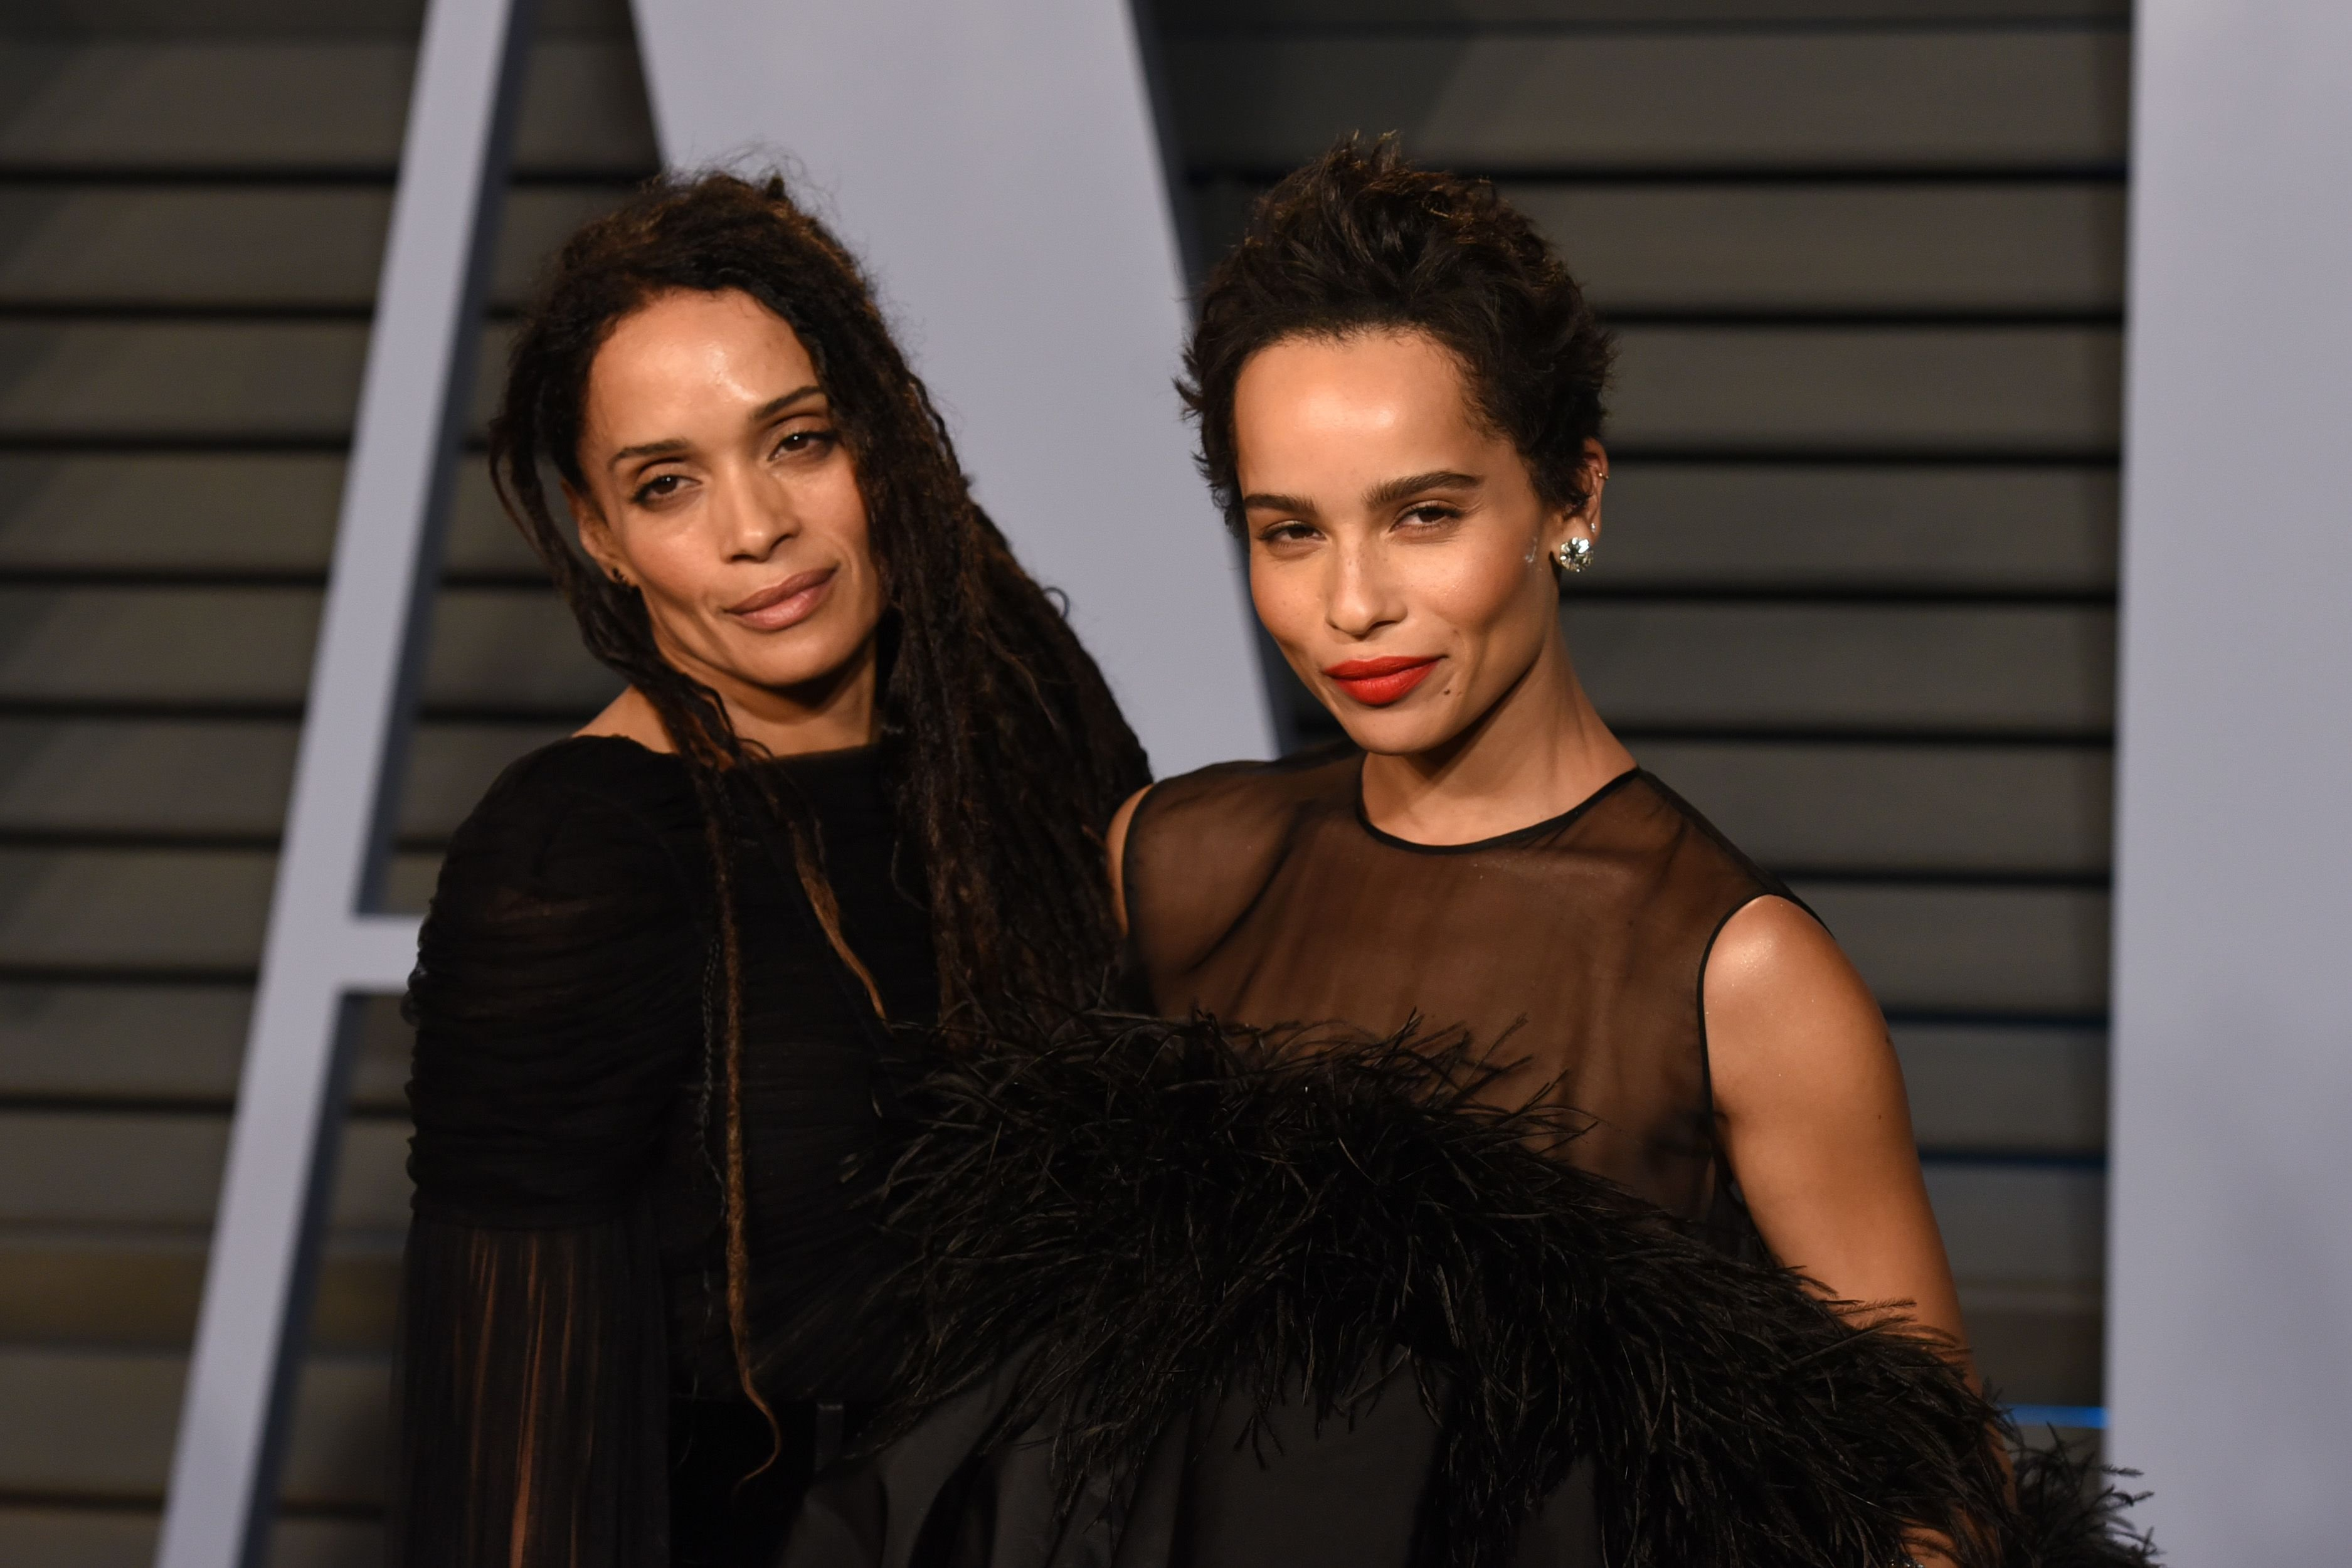 Lisa Bonet and Zoe Kravitz at the 2018 Vanity Fair Oscar Party Hosted By Radhika Jones - Arrivals at Wallis Annenberg Center for the Performing Arts on March 4, 2018 | Photo: Getty Images